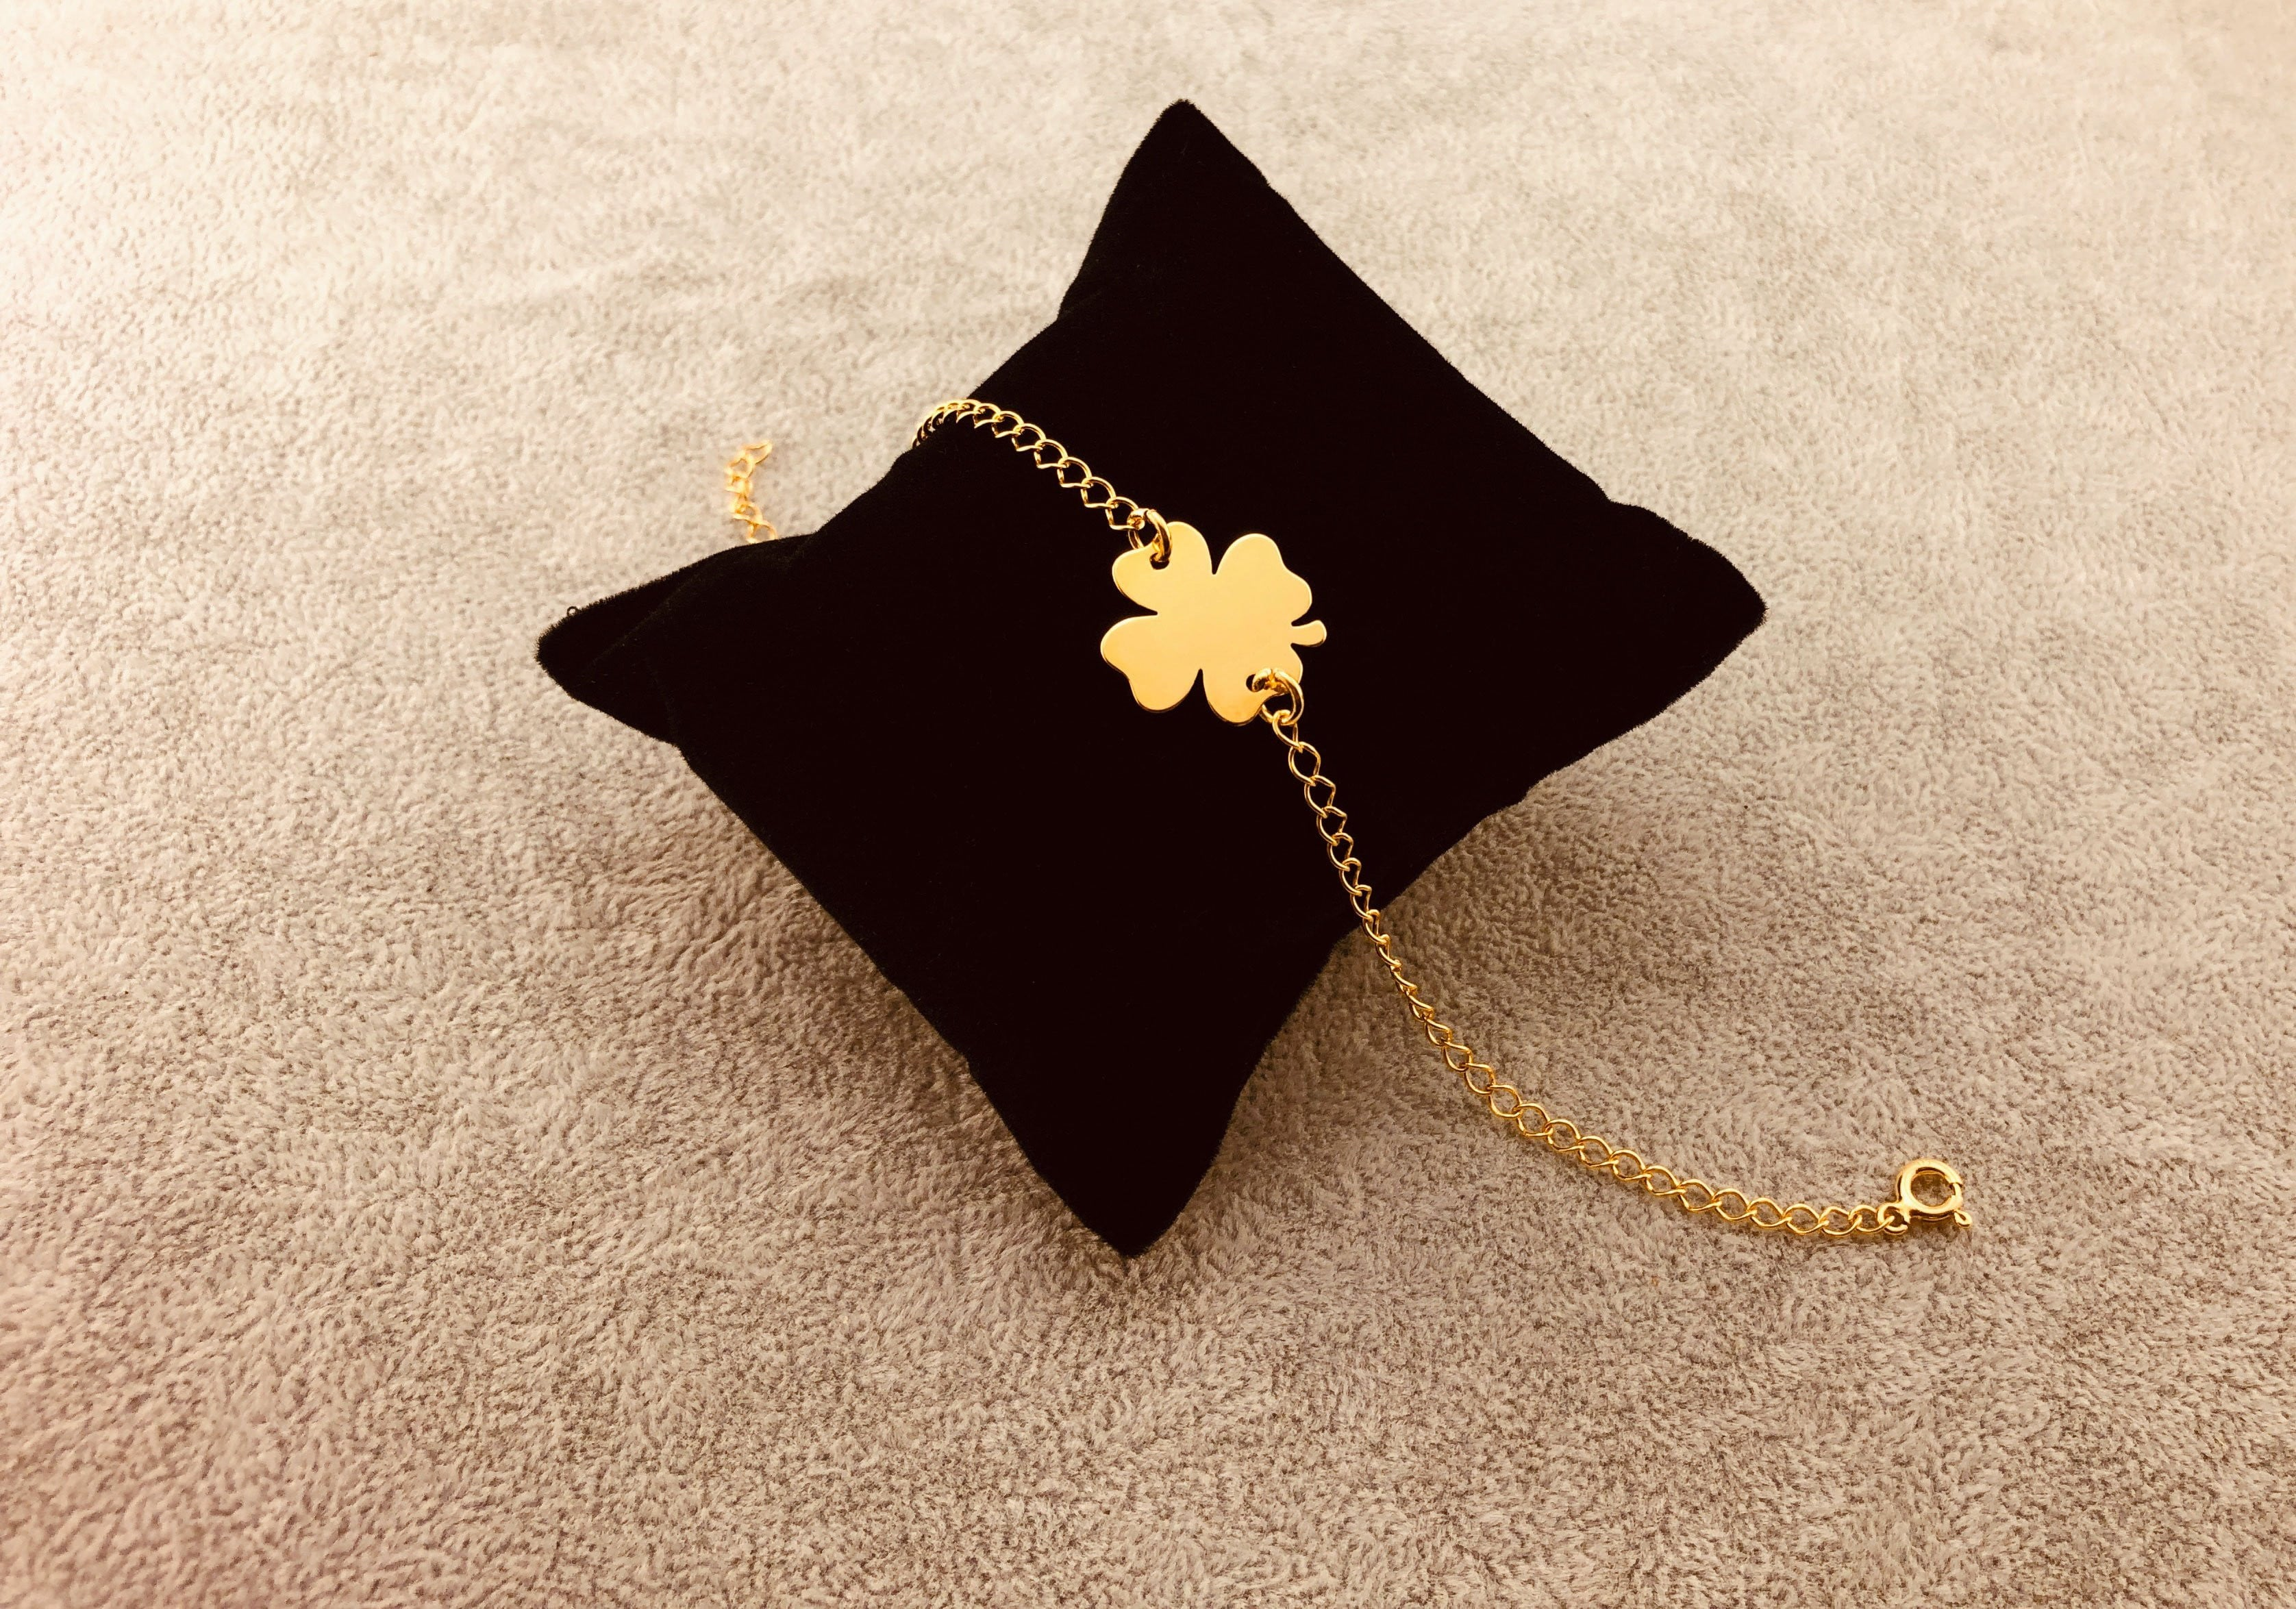 GOLD PLATED 24K BRACELET - GOLD CLOVER - By Janine Jewellery